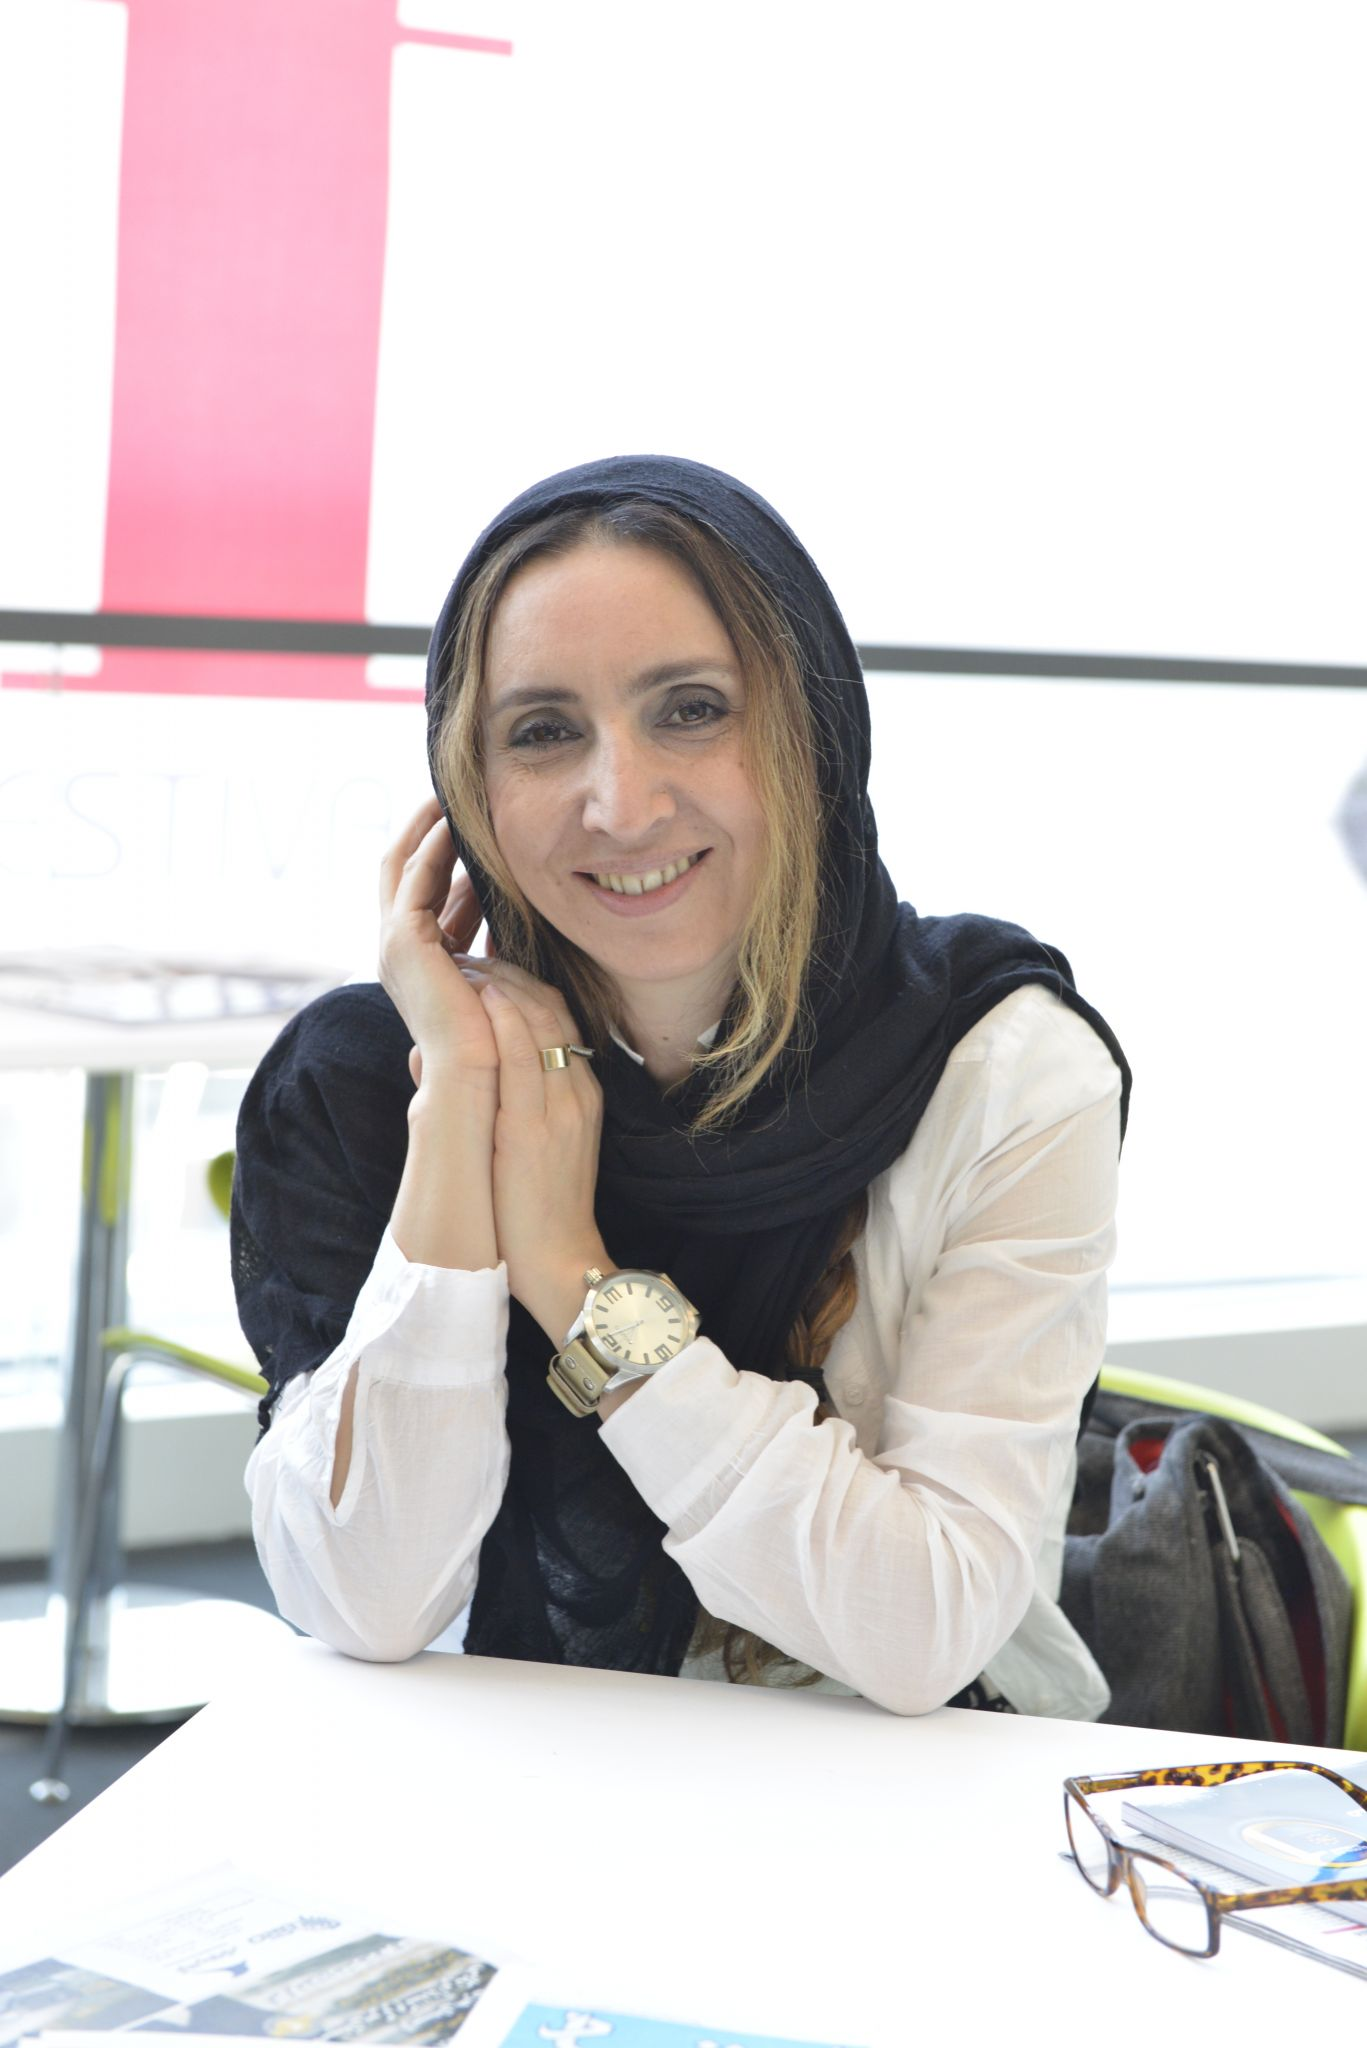 An interview with Semra Guzel Korver, invited to Iran Film Market of the 34th Fajr International Film Festival     Strong cultural ties between Iran and Turkey